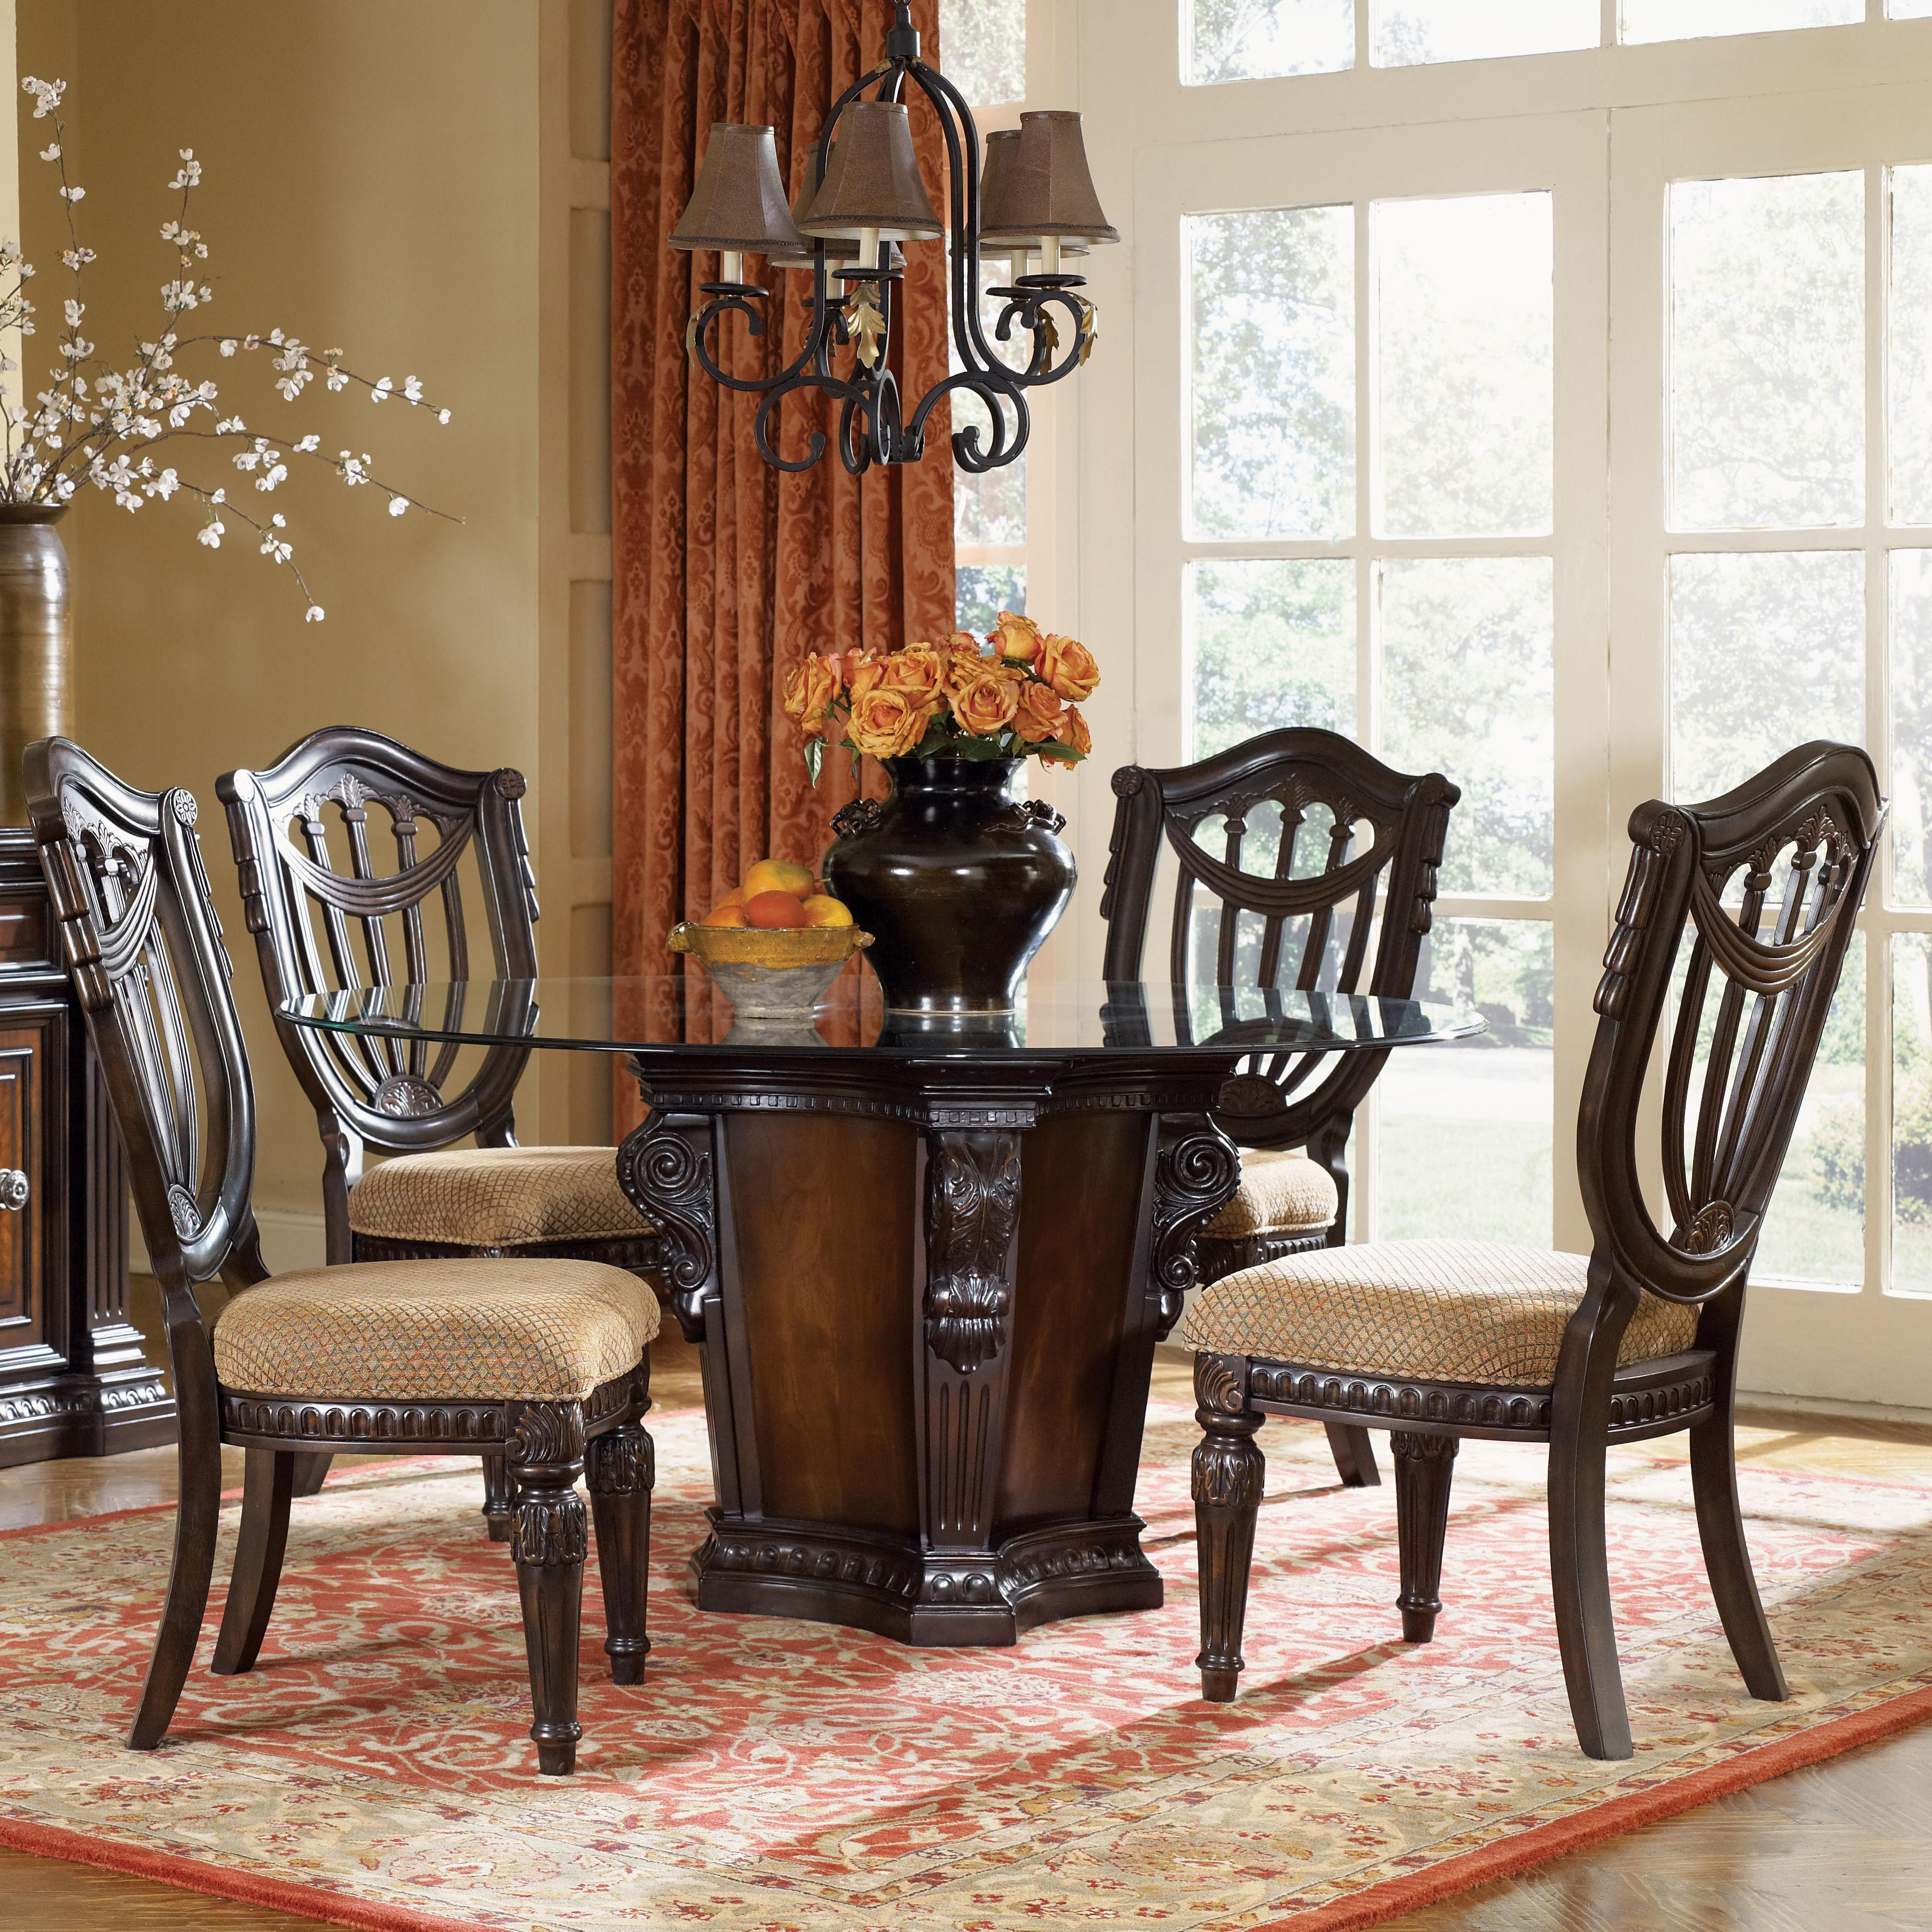 2020 5 Piece Dining Sets Regarding Fairmont Designs Grand Estates 5 Piece Dining Table And Chairs Set (View 1 of 25)